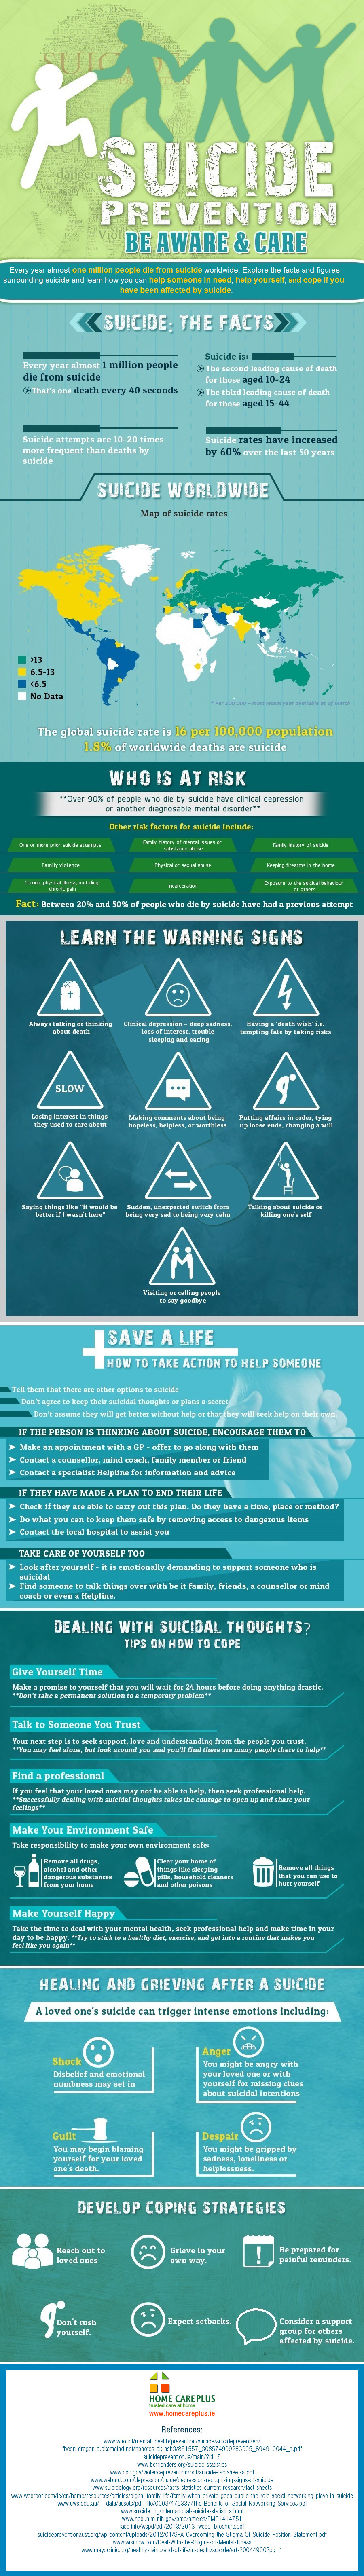 Suicide Prevention - Be Aware and Care